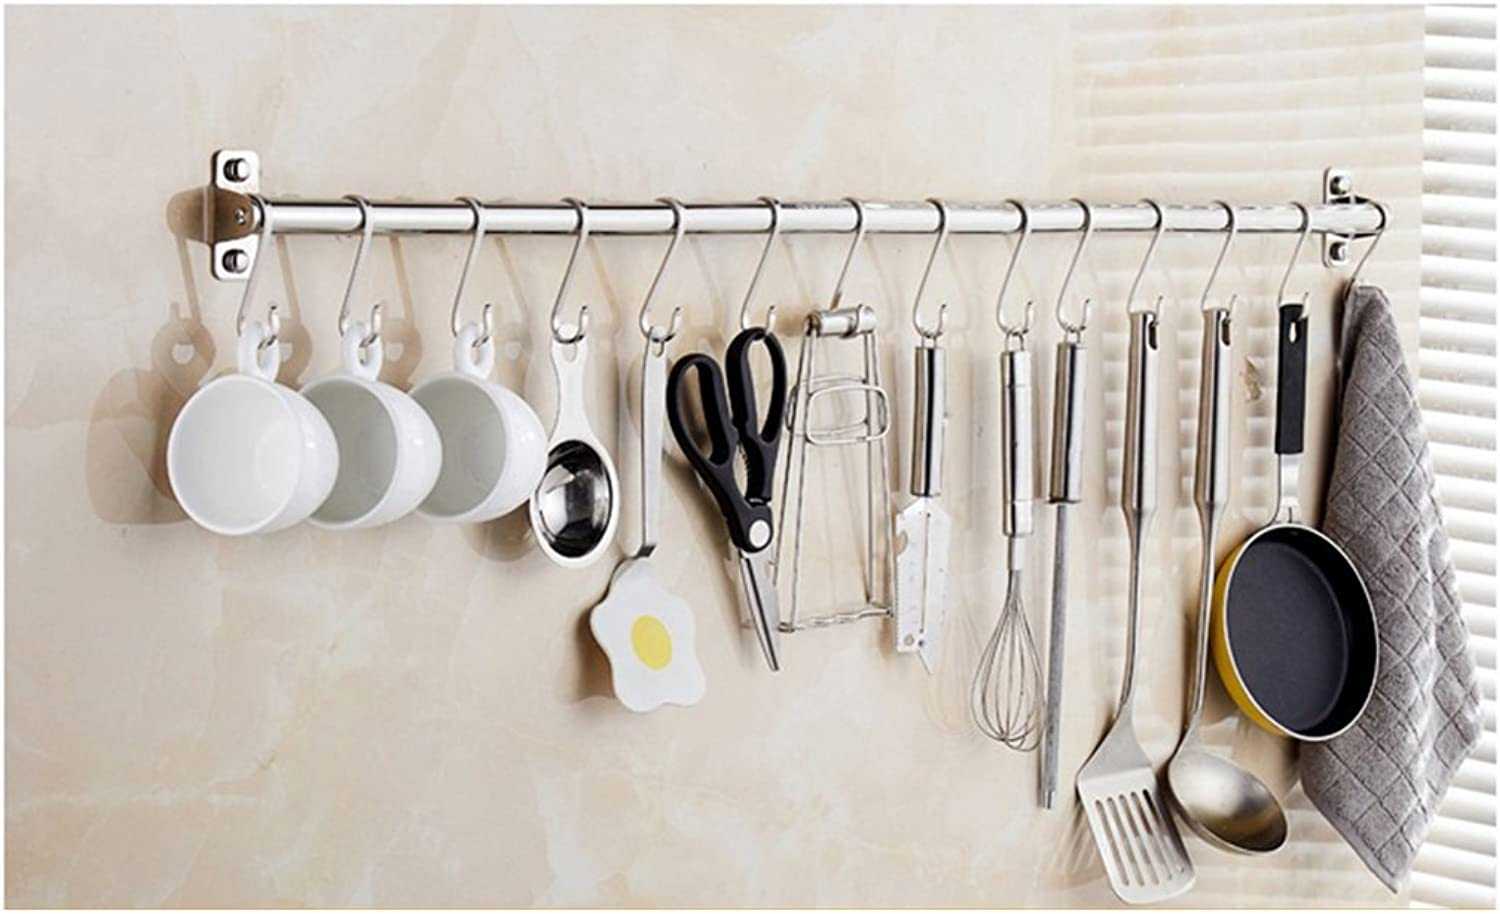 Kitchen Shelf Storage Rack 304 Stainless Steel Wall-Mounted Without Drilling Hook Type Crossbars Wall-Mounted (Size   100CM)